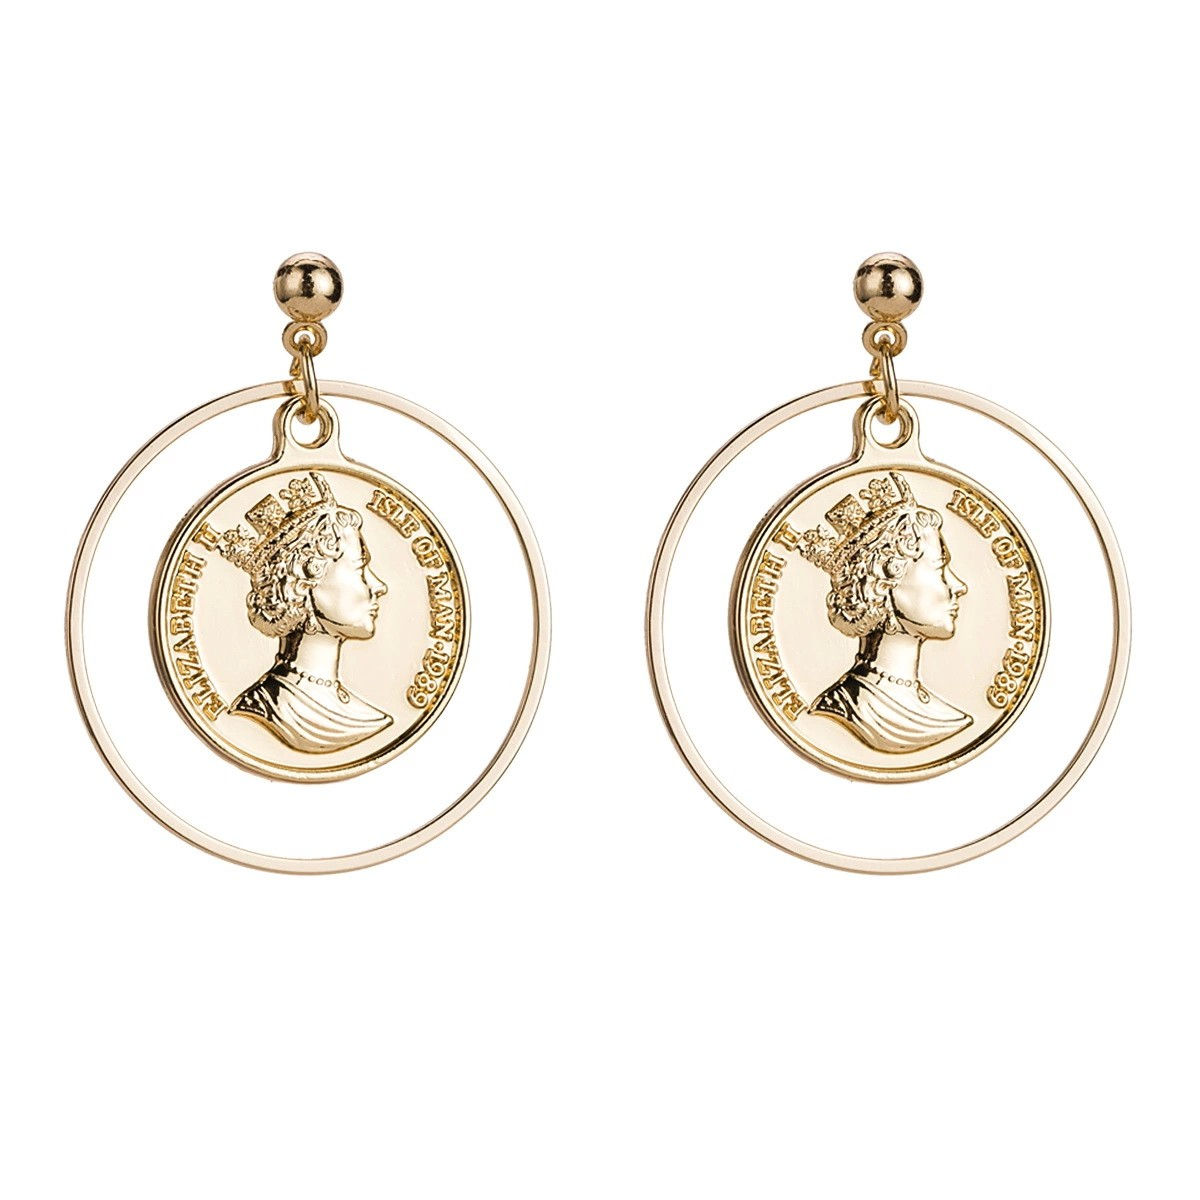 e5ead4ee8 coin loop drop earrings studs gold color www.axelles-fashion.com ref 18047